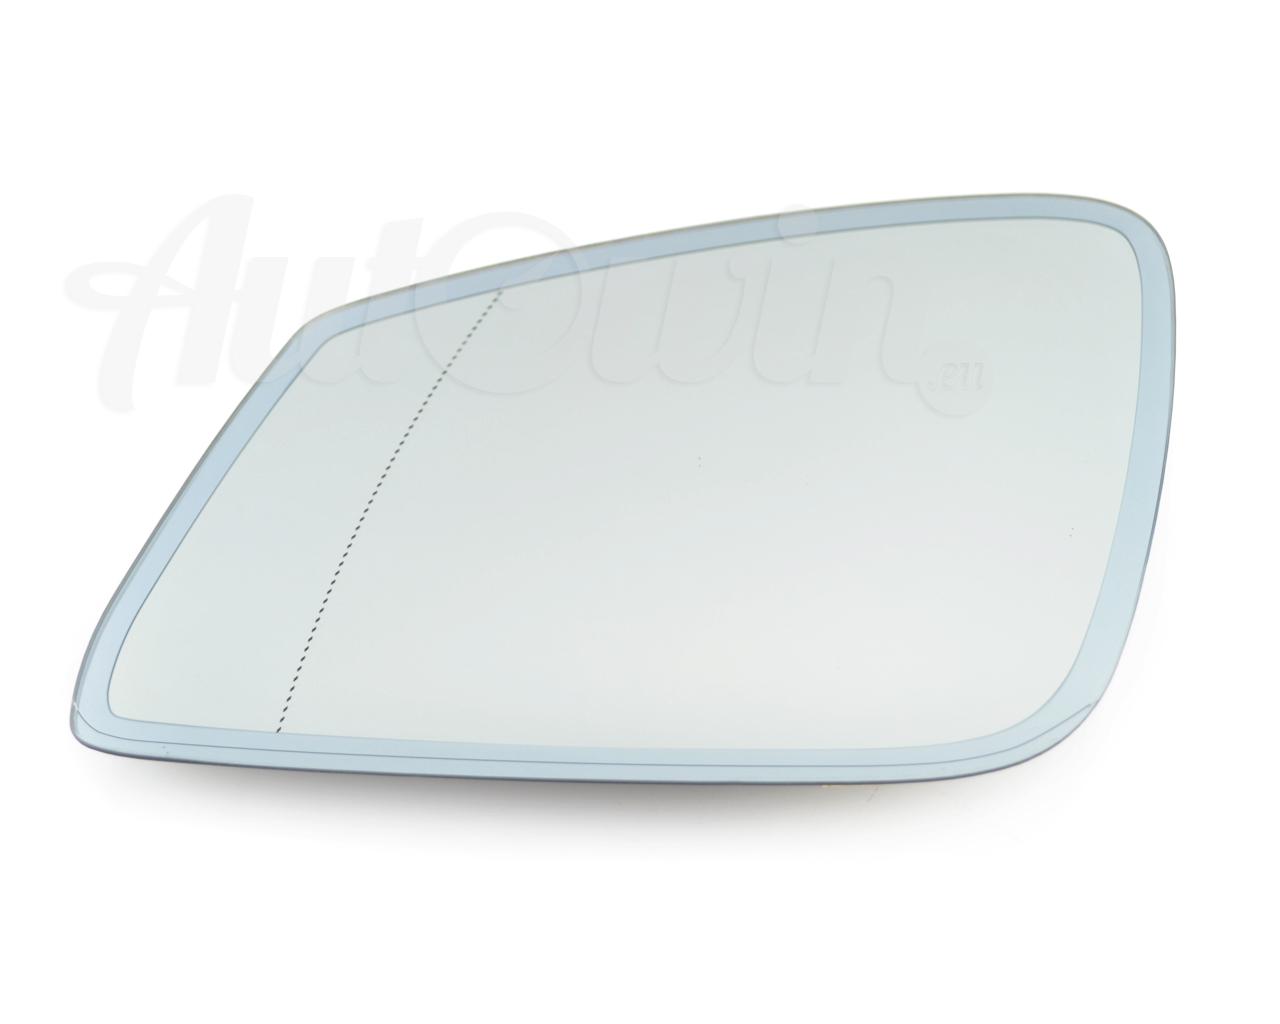 For BMW 5 Series F10 F11 2010-2015 Mirror Glass Heated Right 51167251584